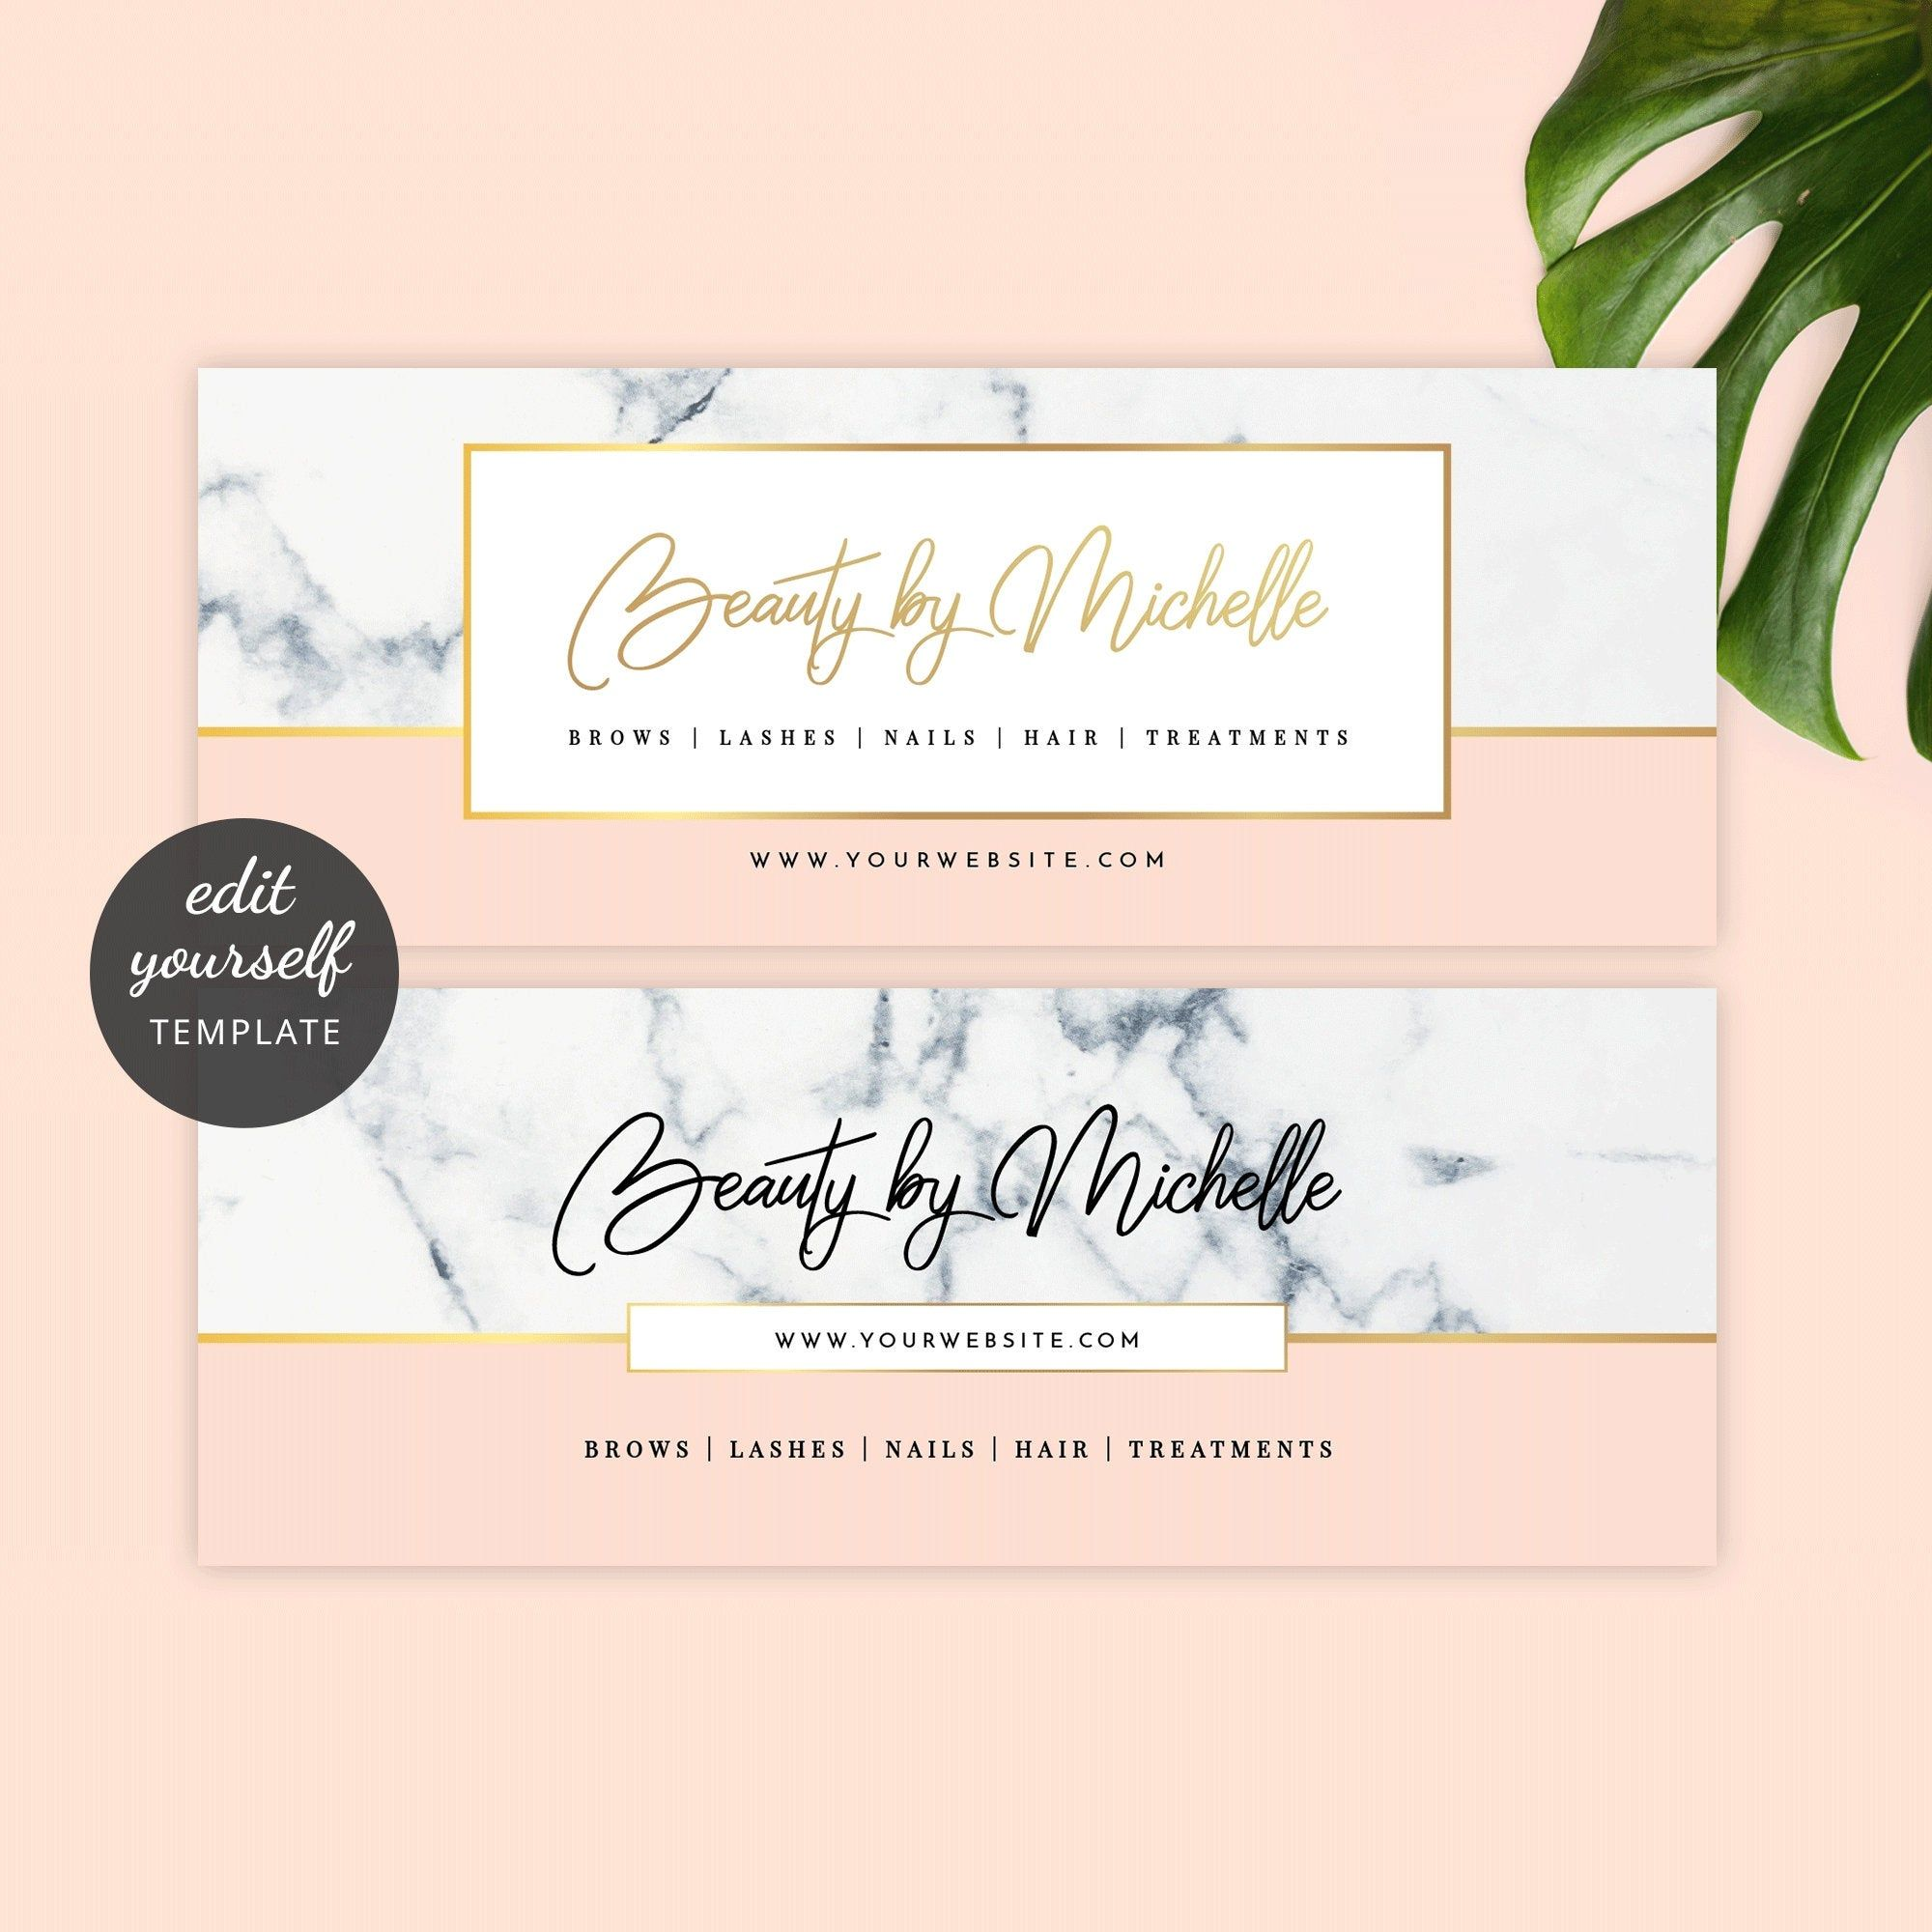 Diy Facebook Header Template Editable Facebook Page Banners Etsy In 2021 Facebook Cover Photo Template Facebook Cover Template Facebook Header